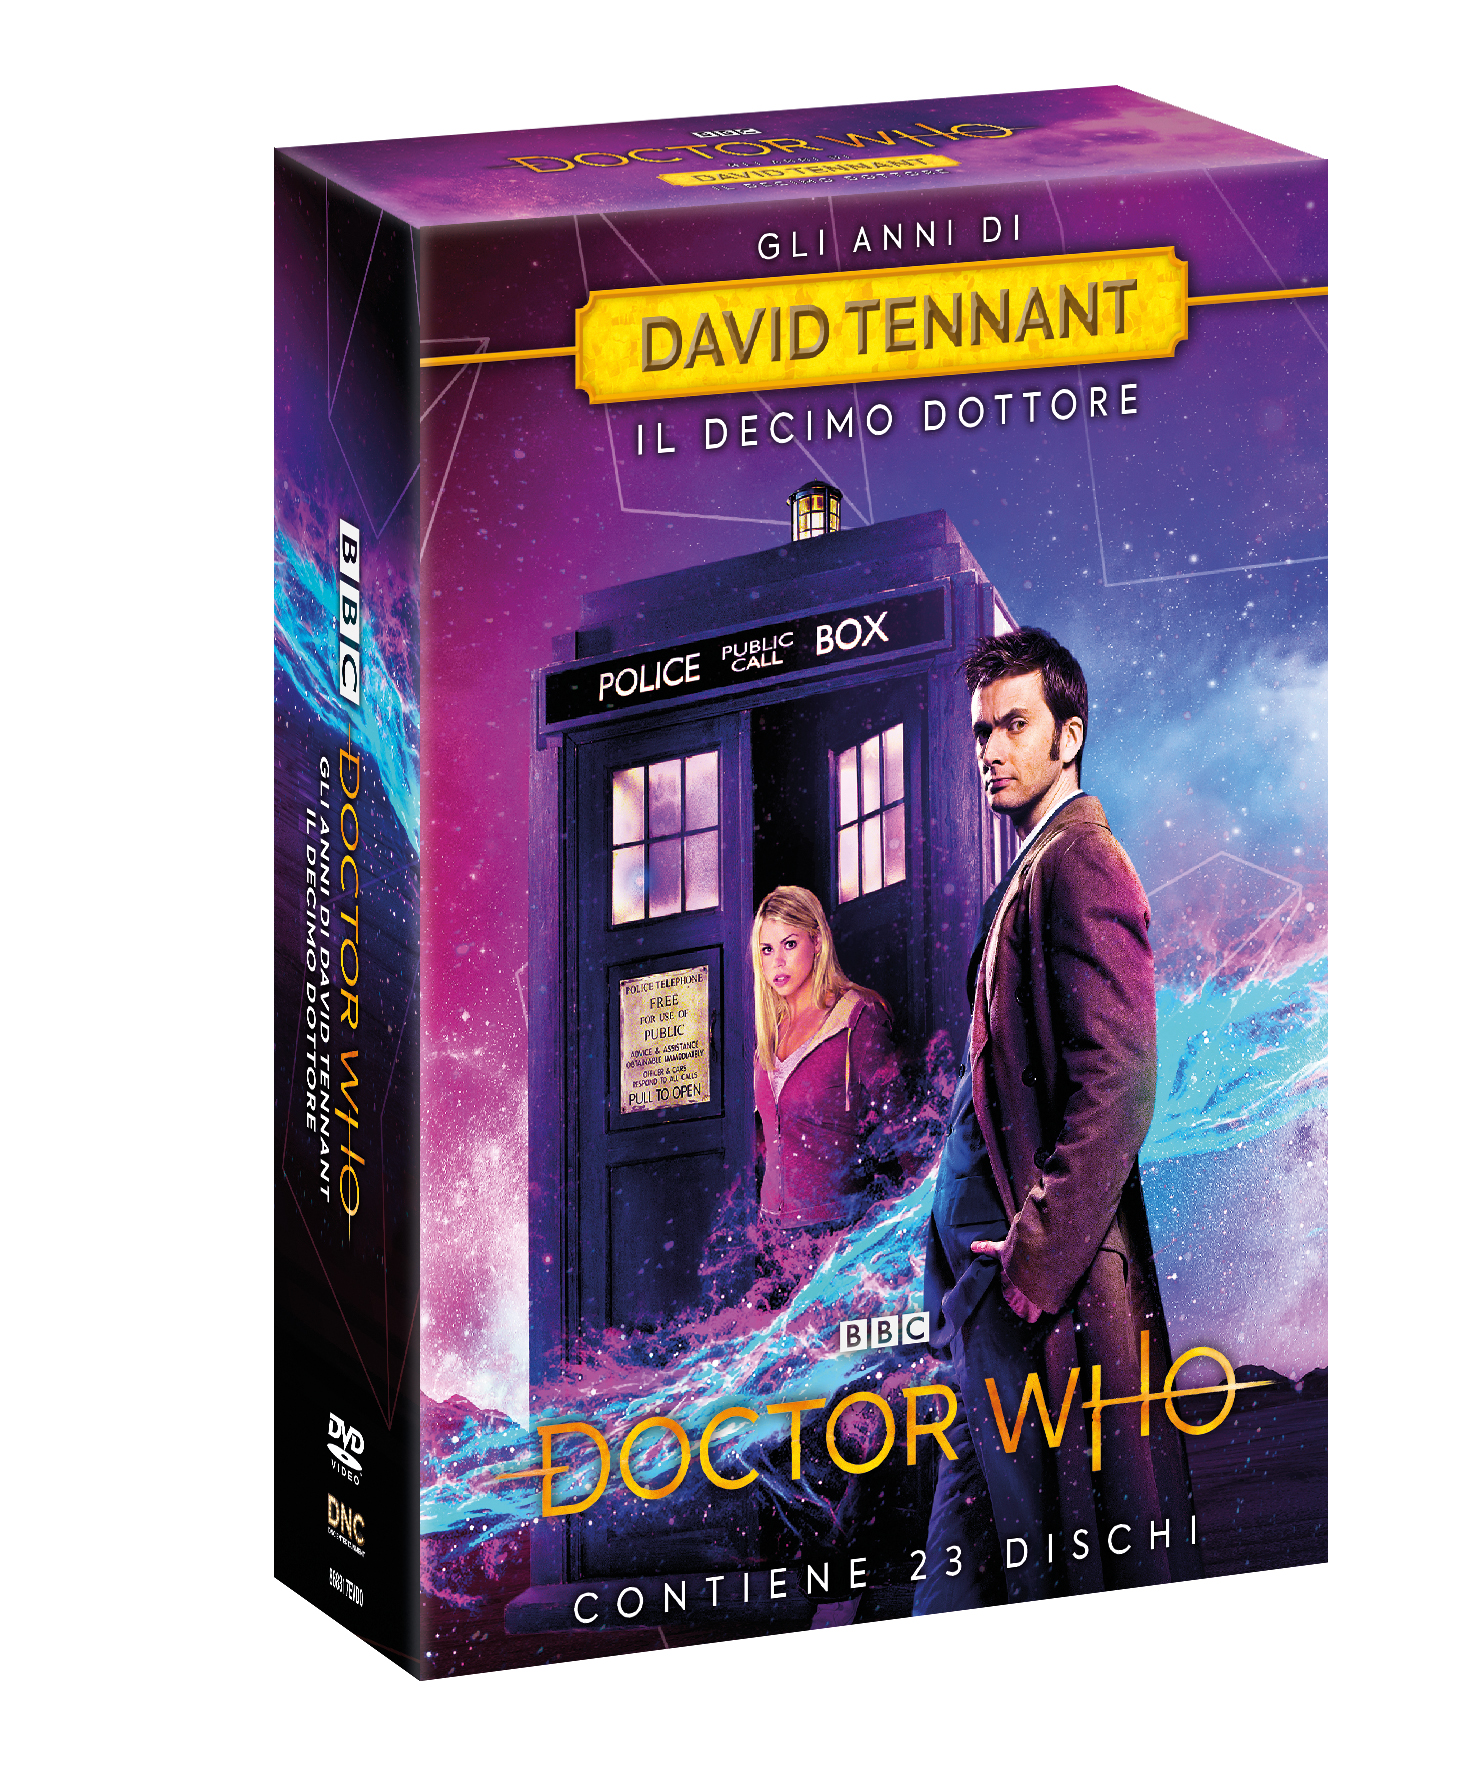 COF.DOCTOR WHO - GLI ANNI DI DAVID TENNANT (23 DVD) (DVD)